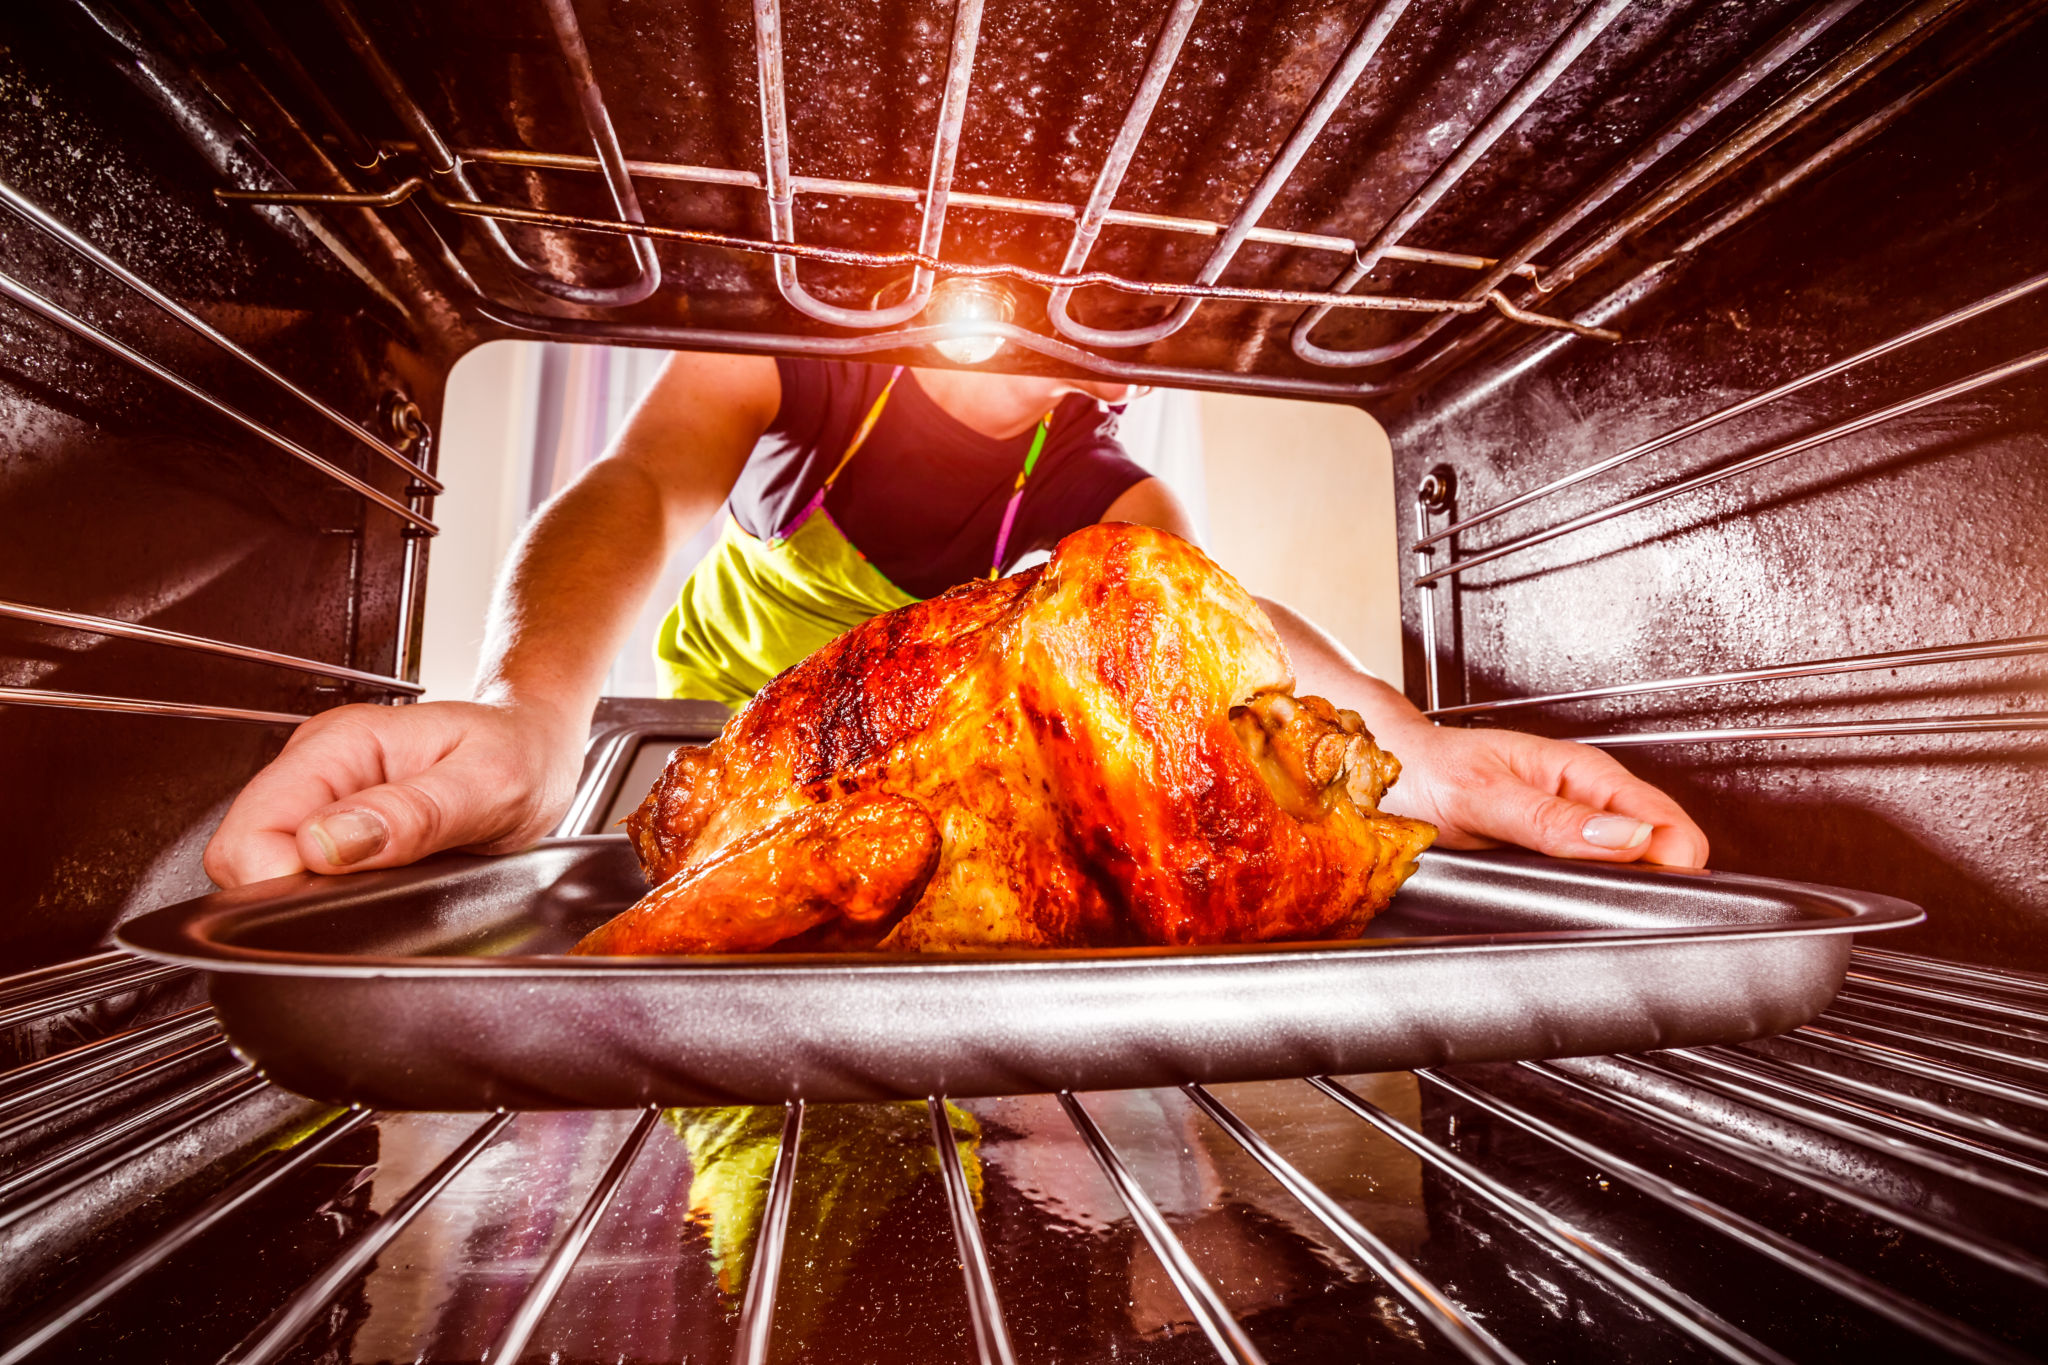 inside of an oven, woman taking a roasted turkey out